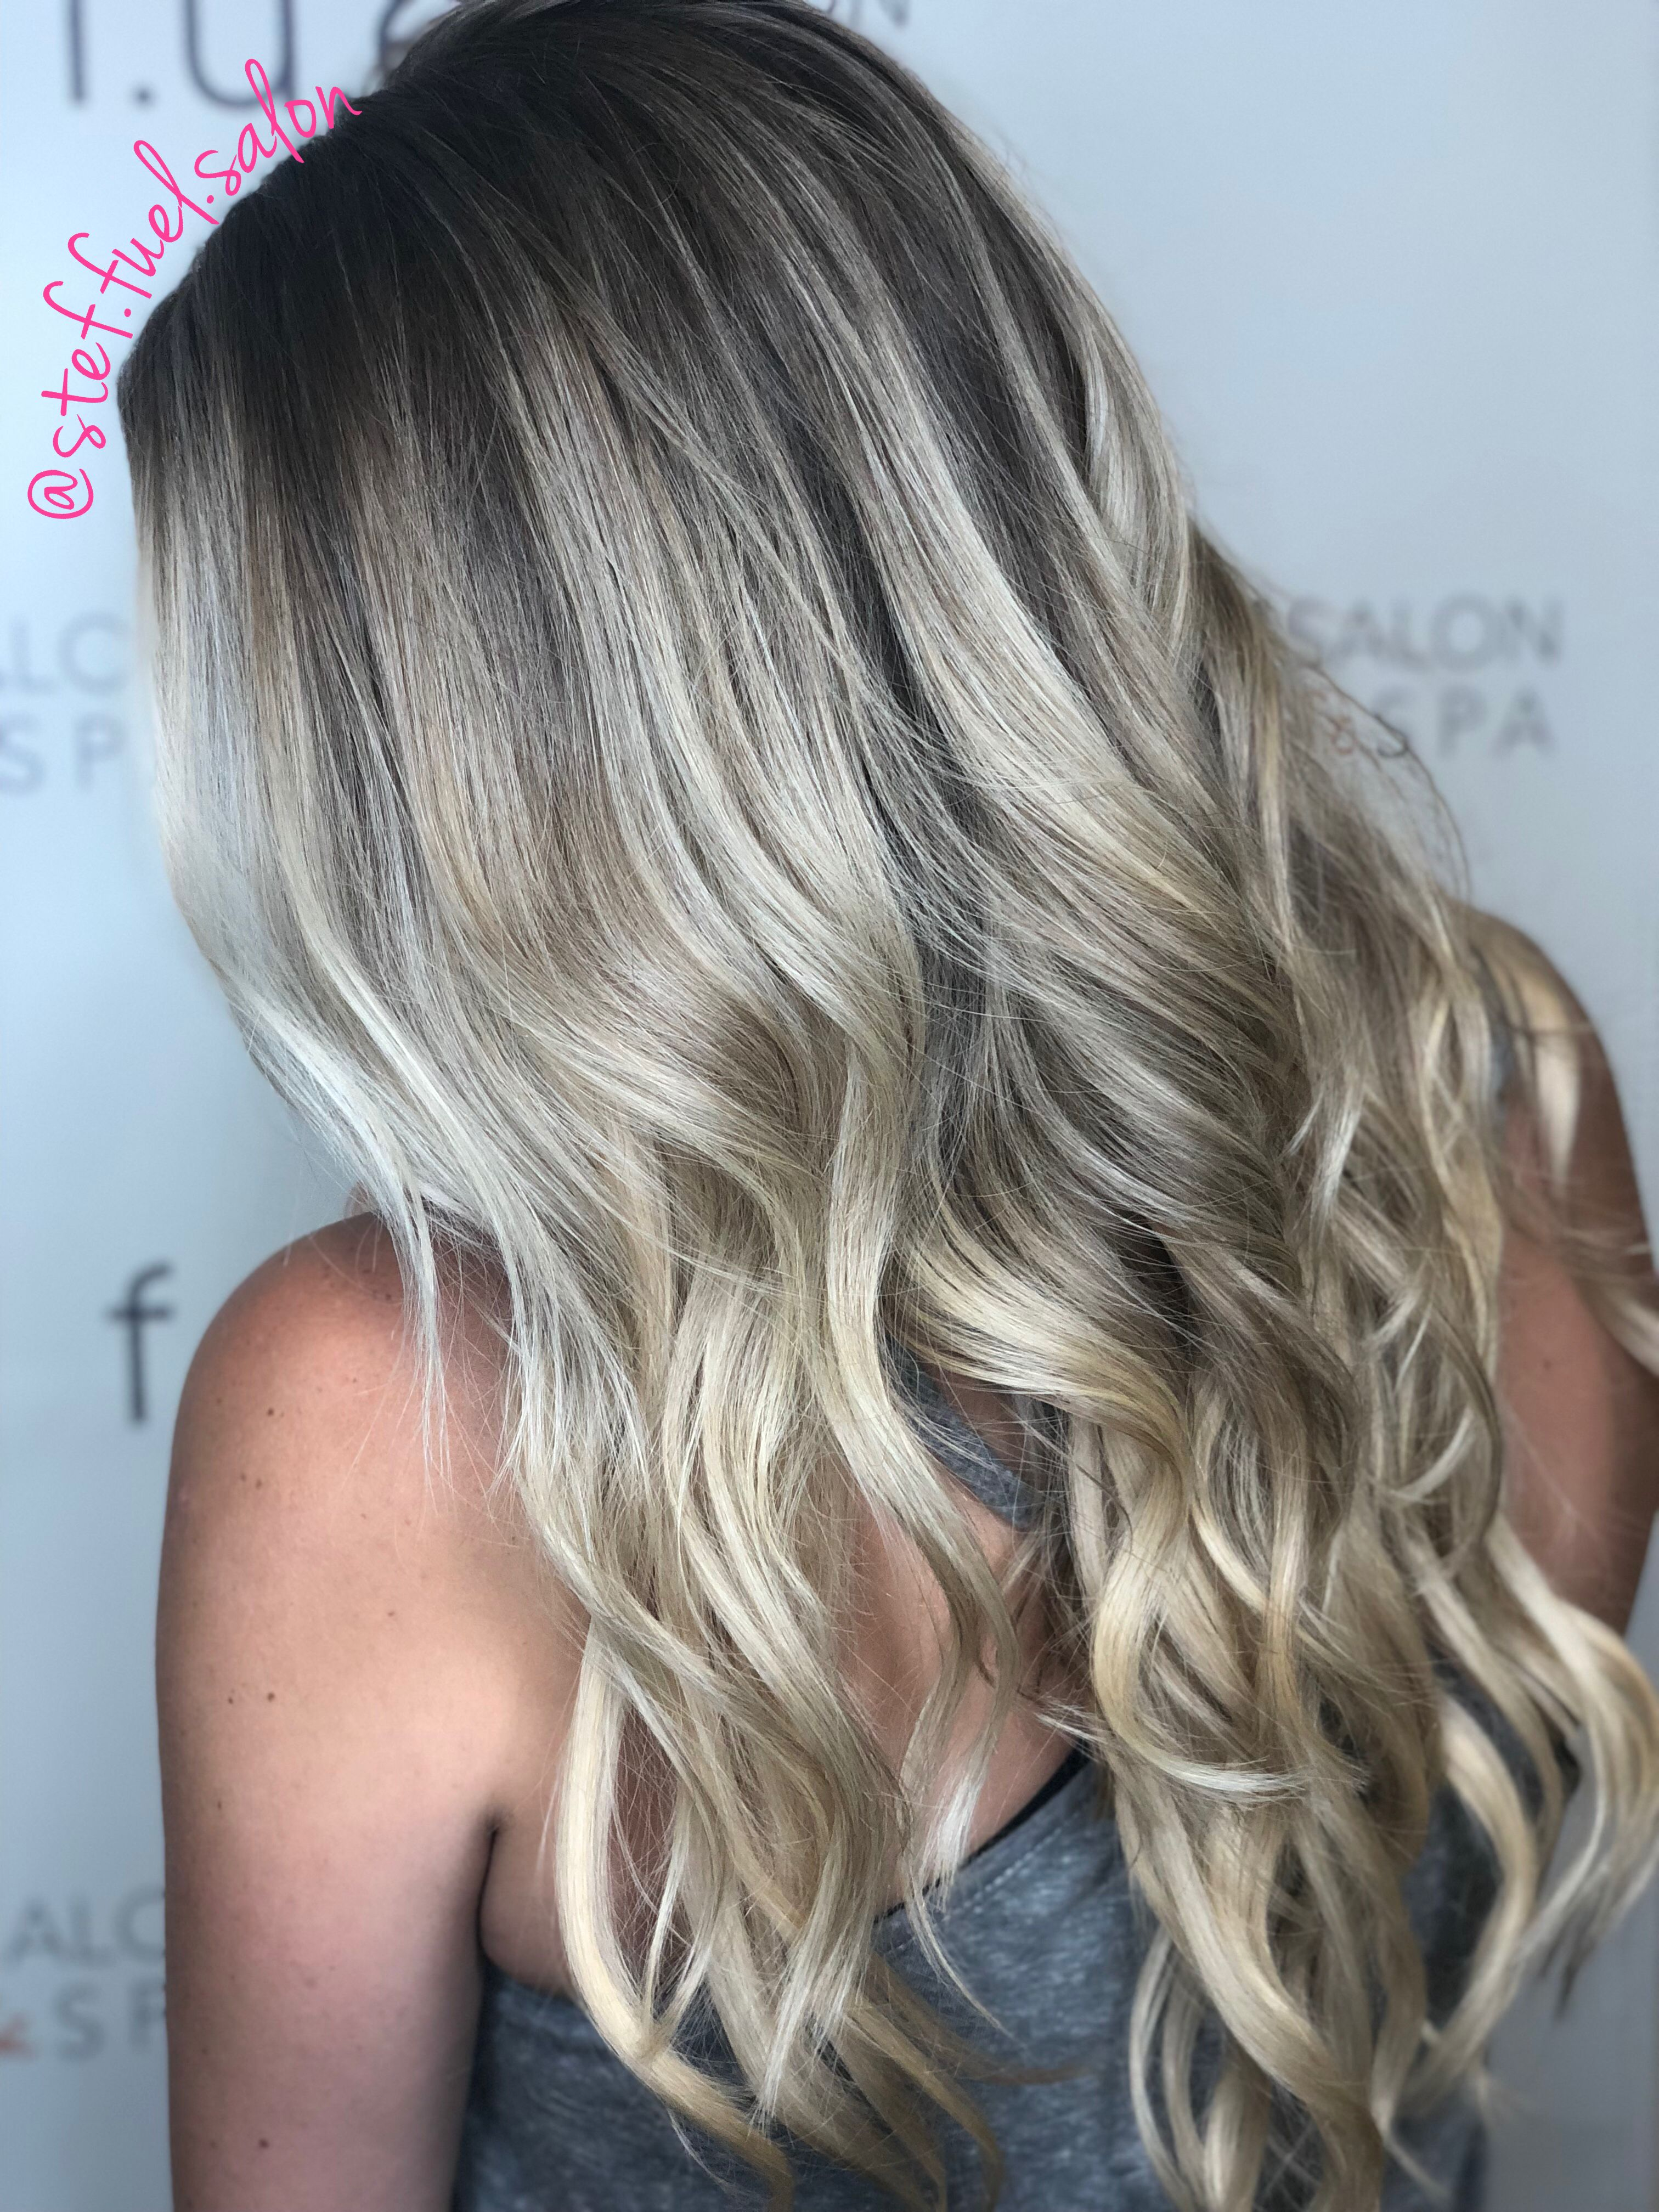 14+ Shadow root with highlights ideas in 2021